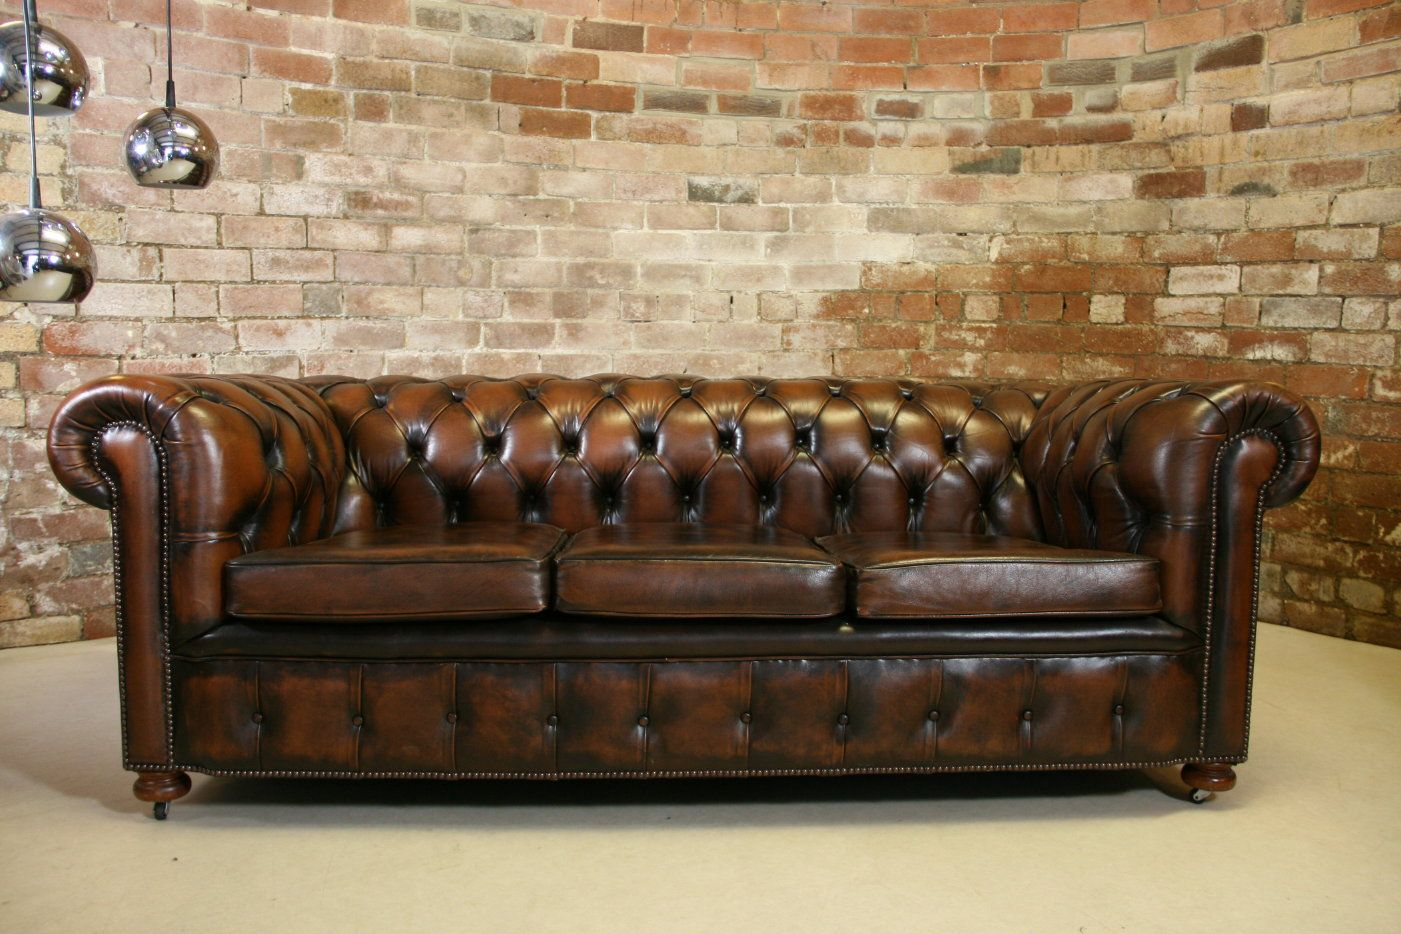 chesterfield leather sofa small corner uk vintage antique brown 3 seater